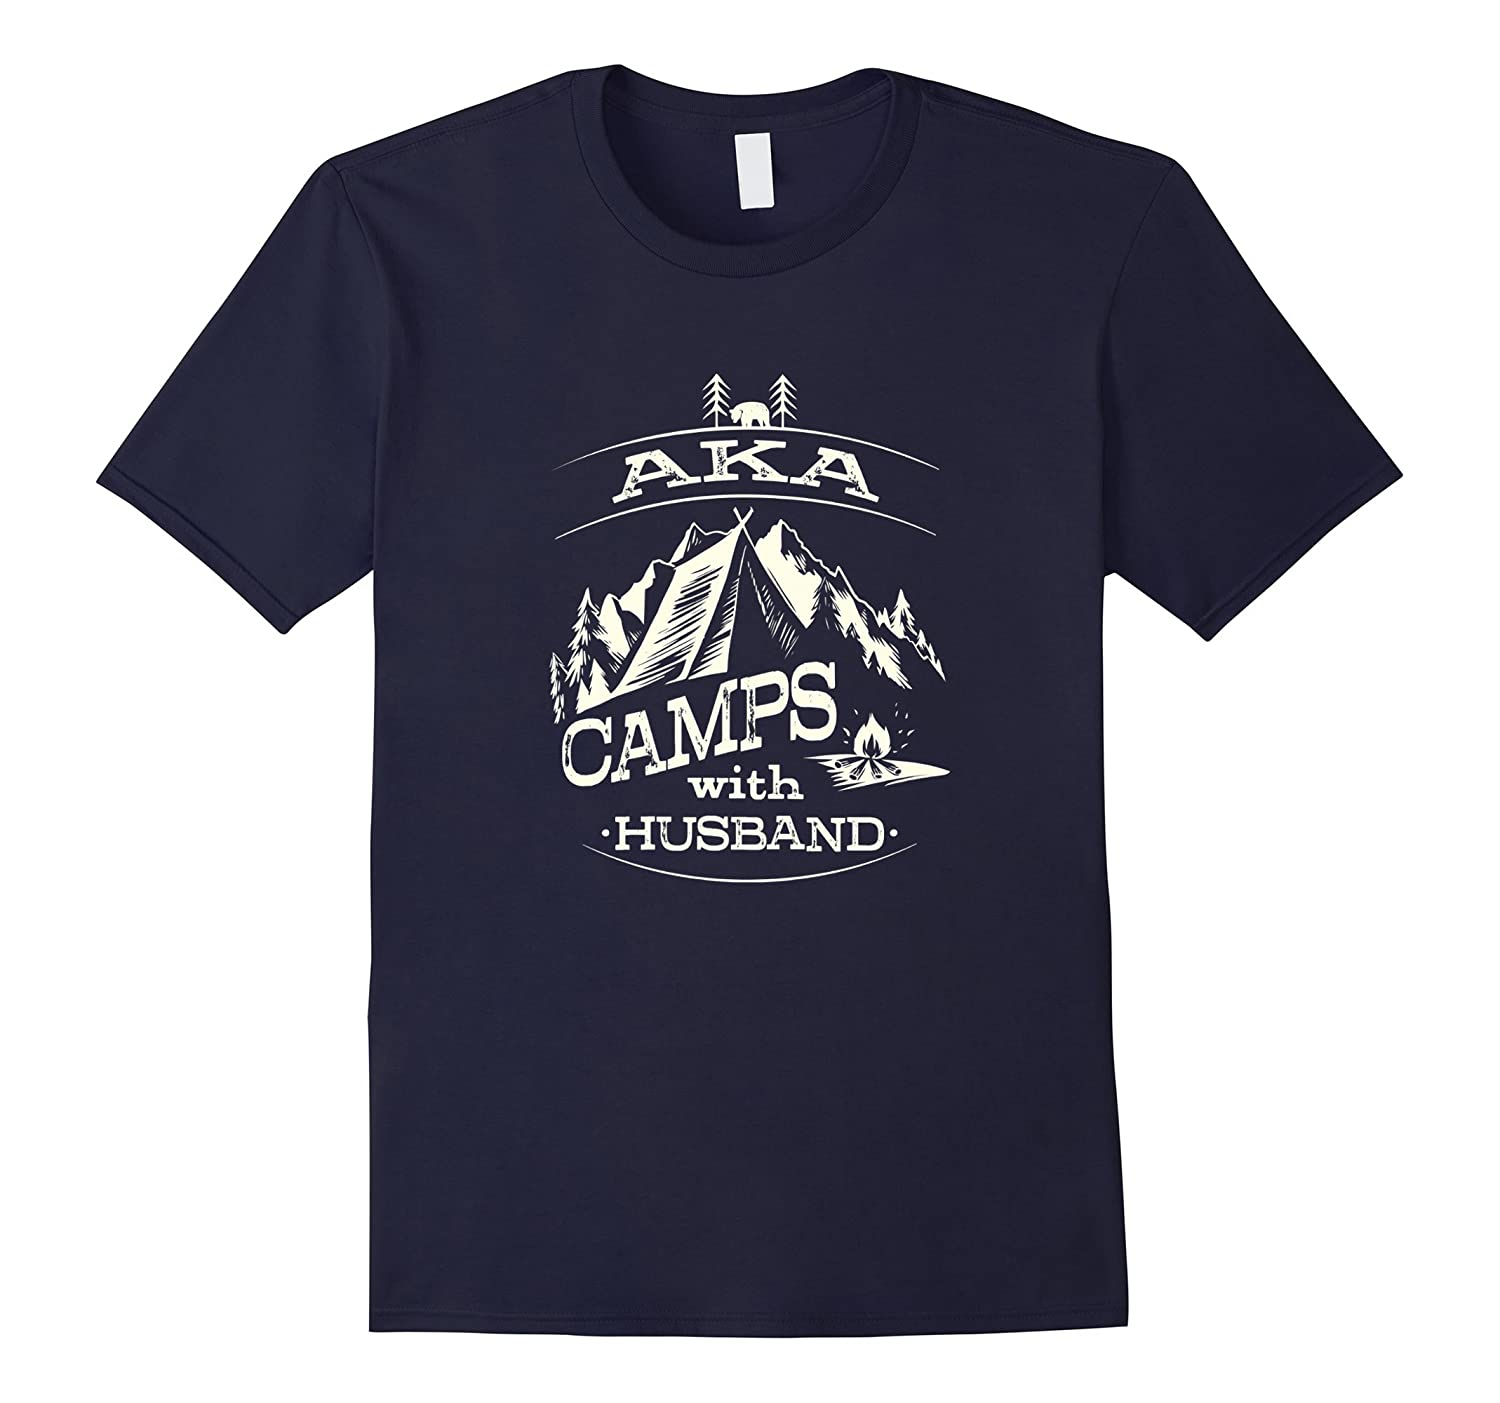 AKA Camps With Husband, Camping, Hiking, Unisex T-shirt